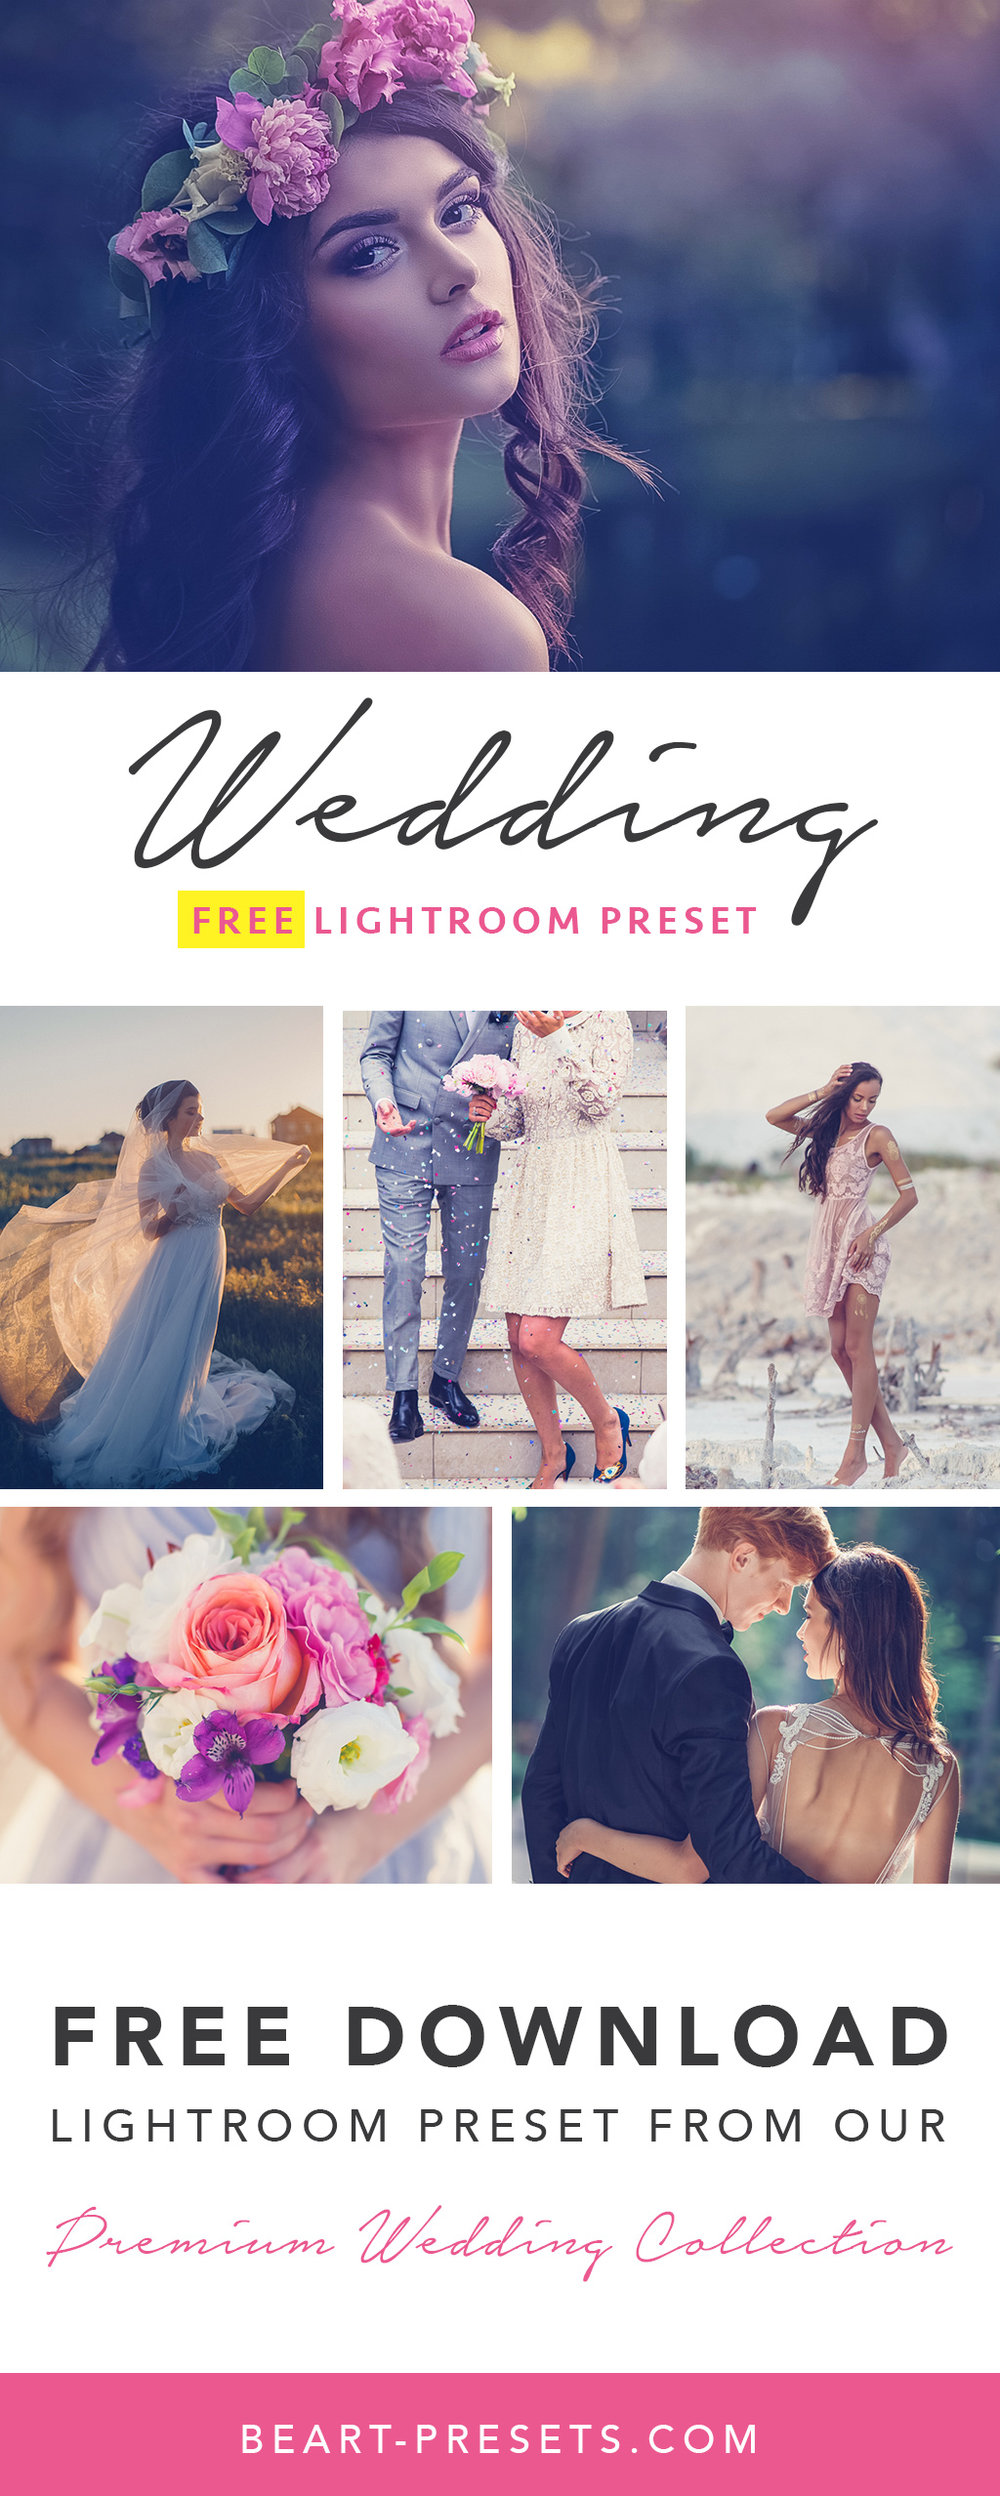 free-wedding-lightroom-preset